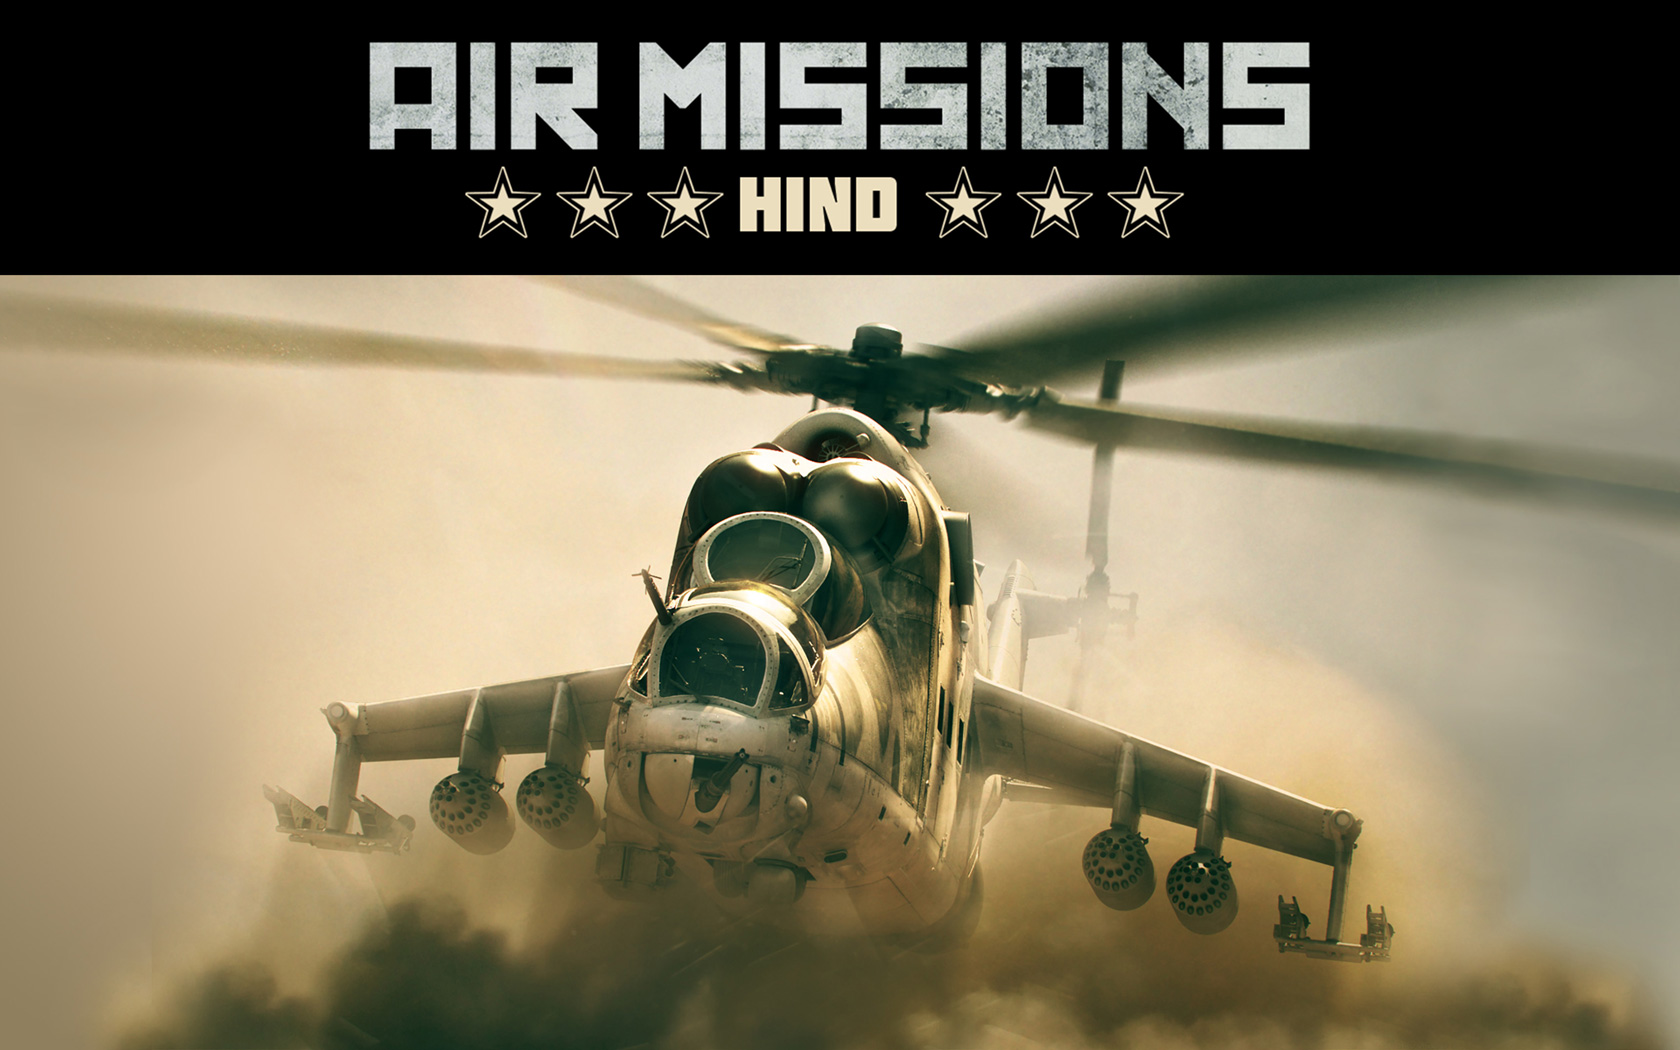 Free Air Missions: HIND Wallpaper in 1680x1050